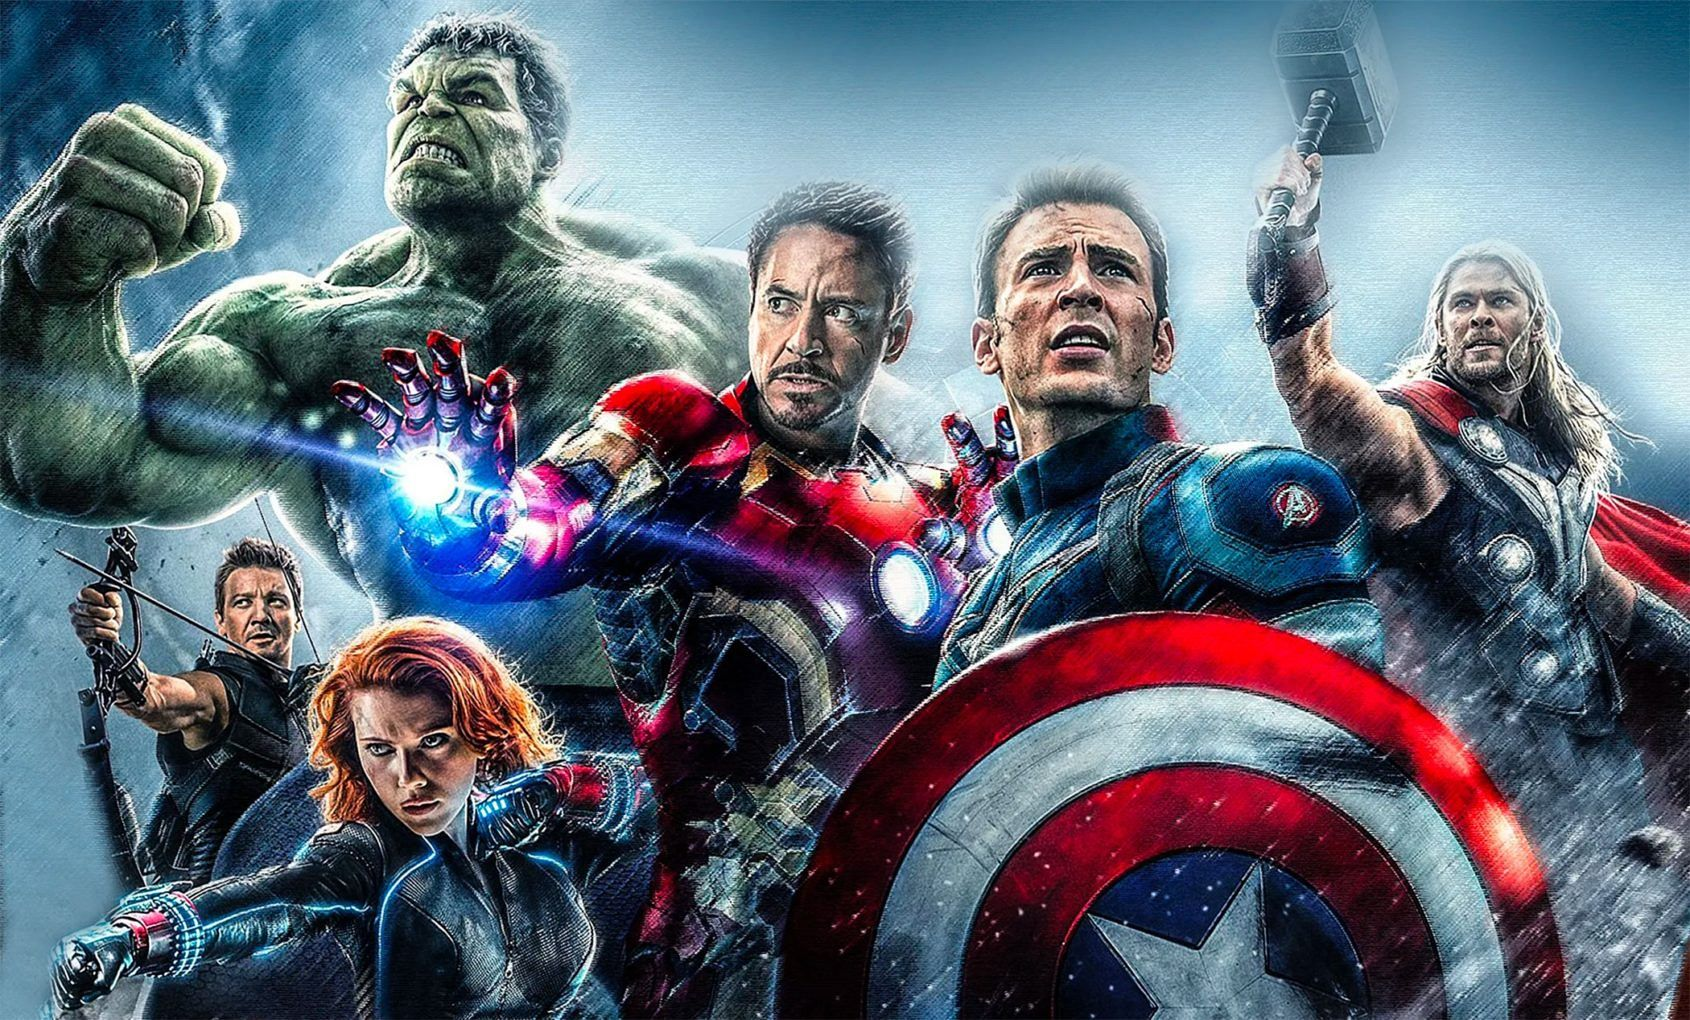 Fit for a superhero: Marvel watch spotting with the cast of The Avengers